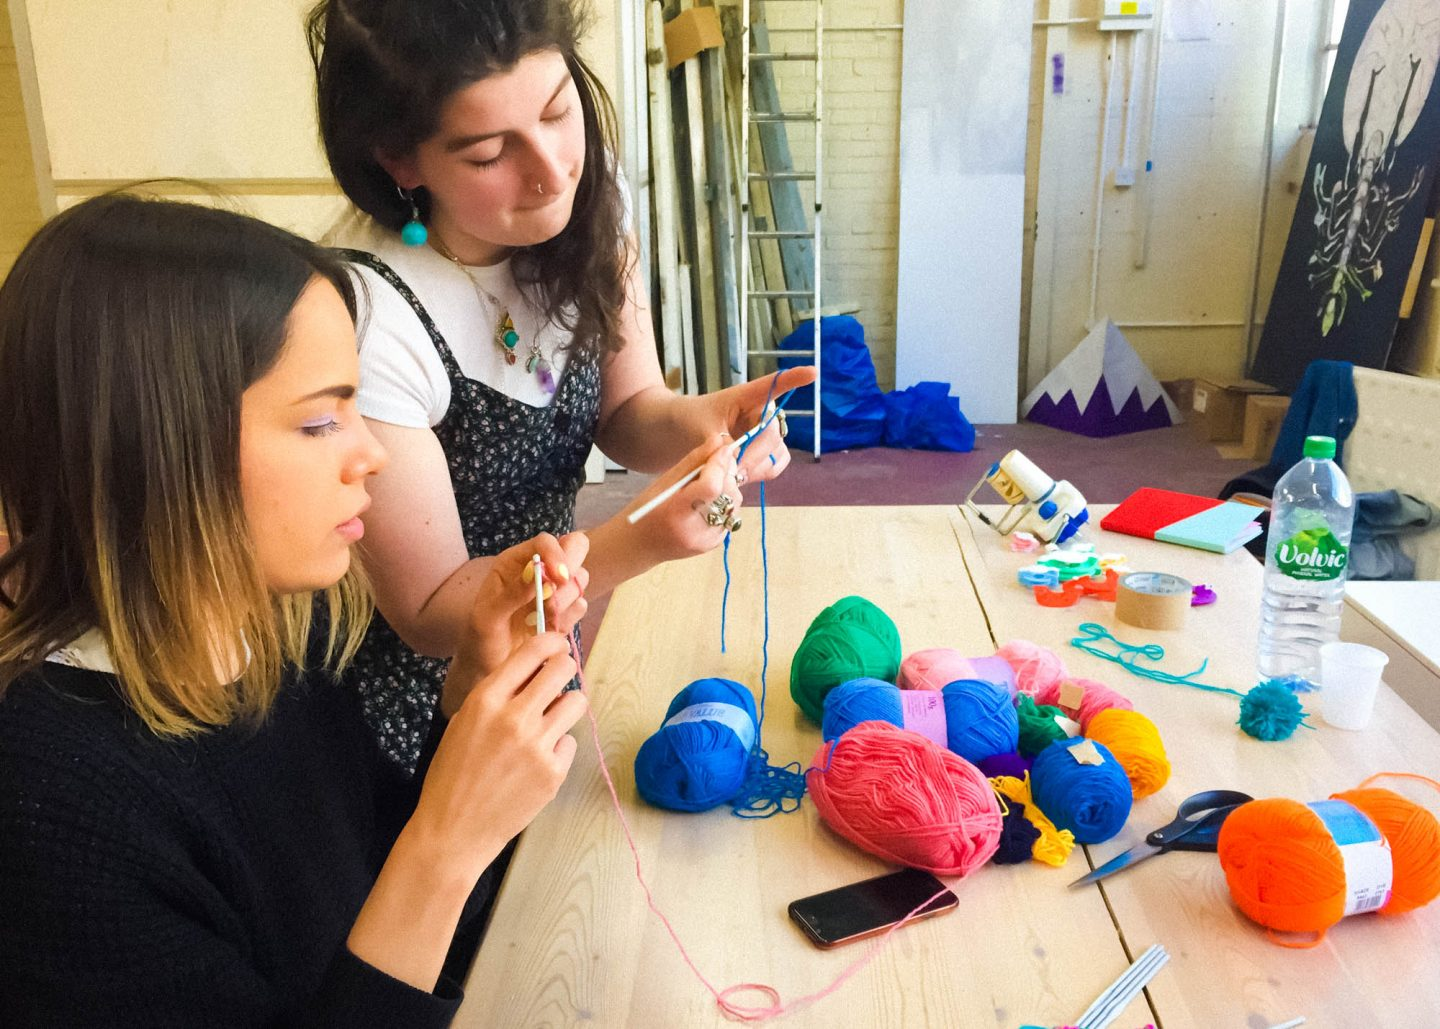 Cathy Van Hear teaching crochet skills for Brainchild festival workshop